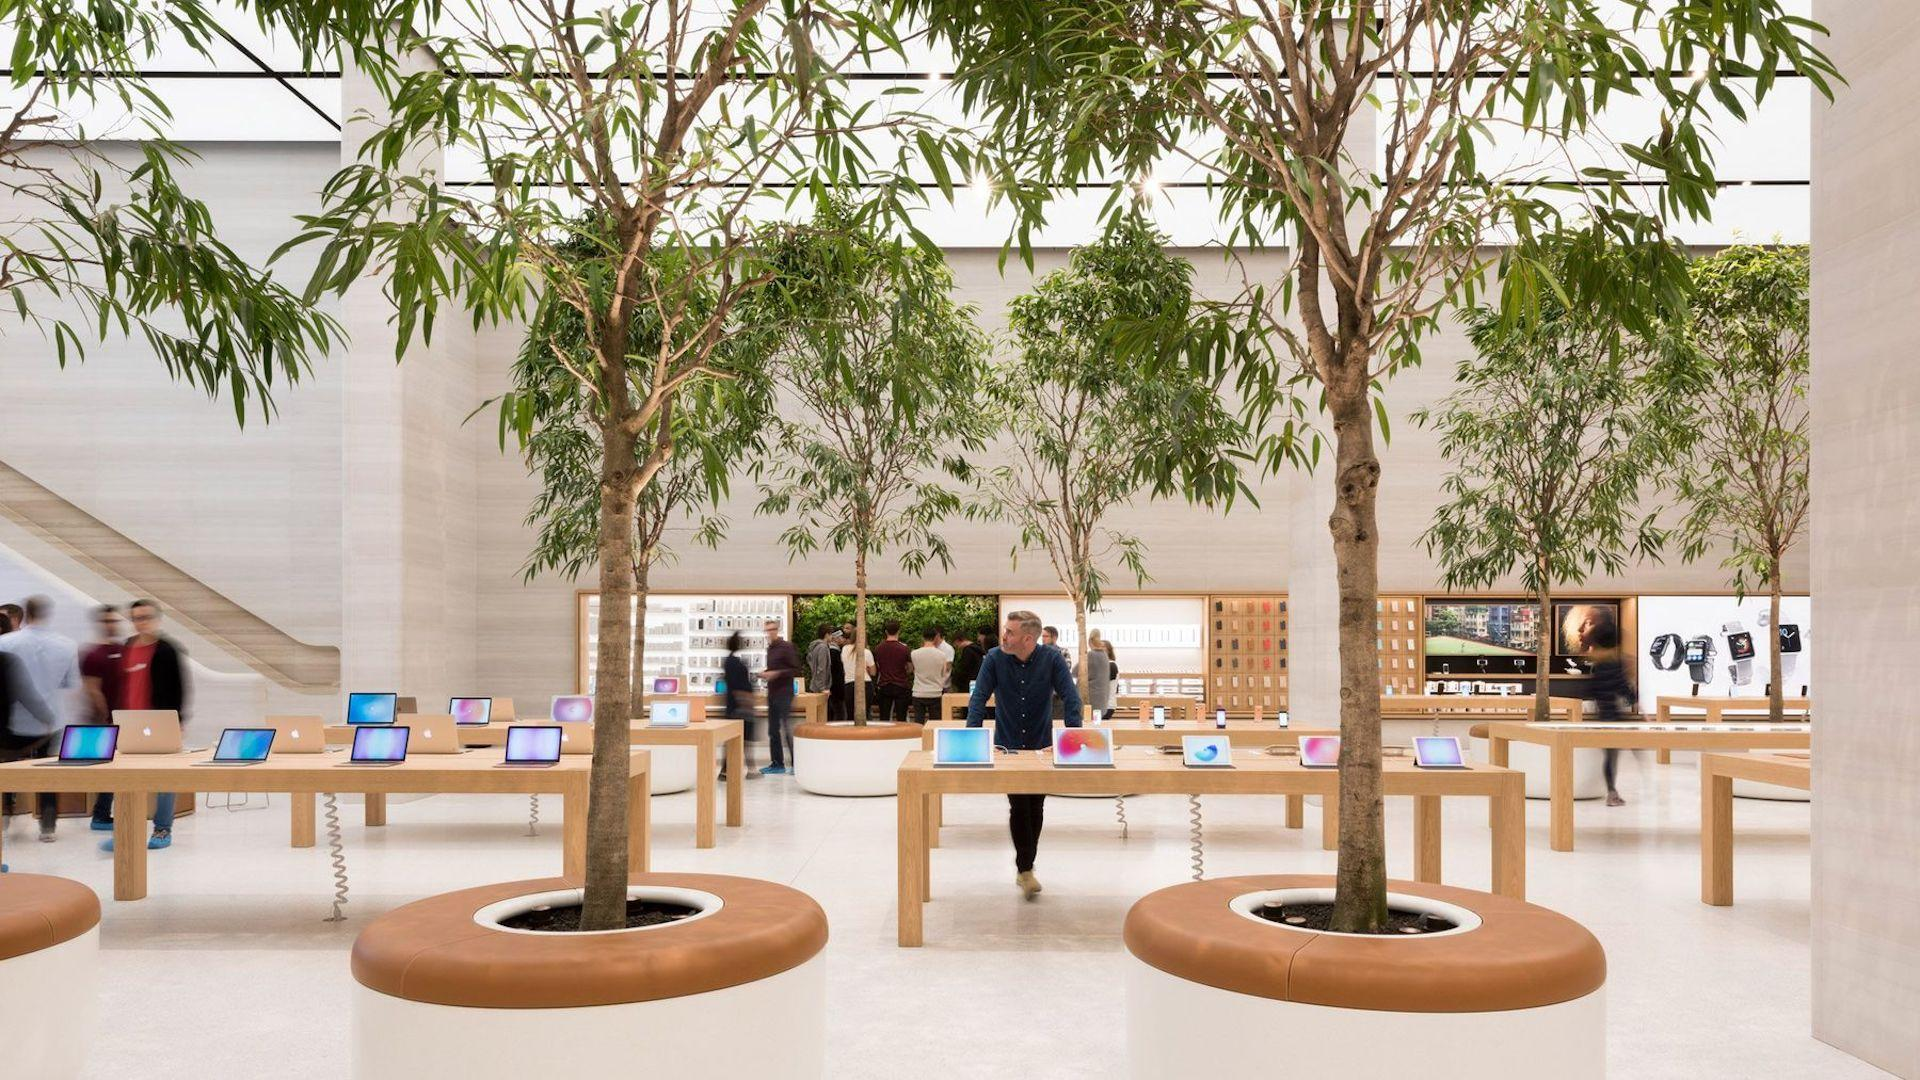 apple-regent-street-foster-partners-london_dezeen_2364_col_9